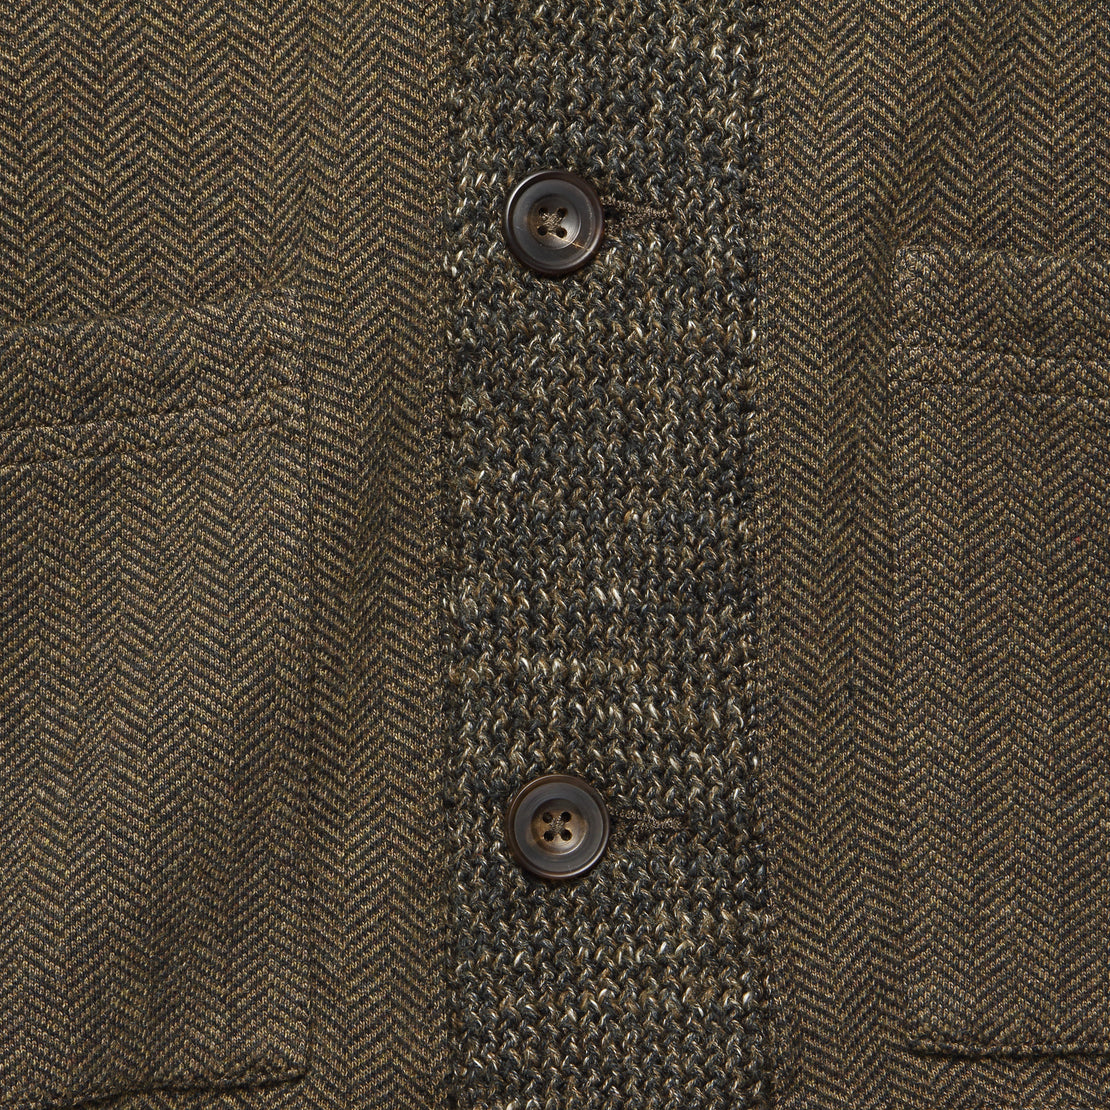 Trip Jacquard Cardigan - Brown